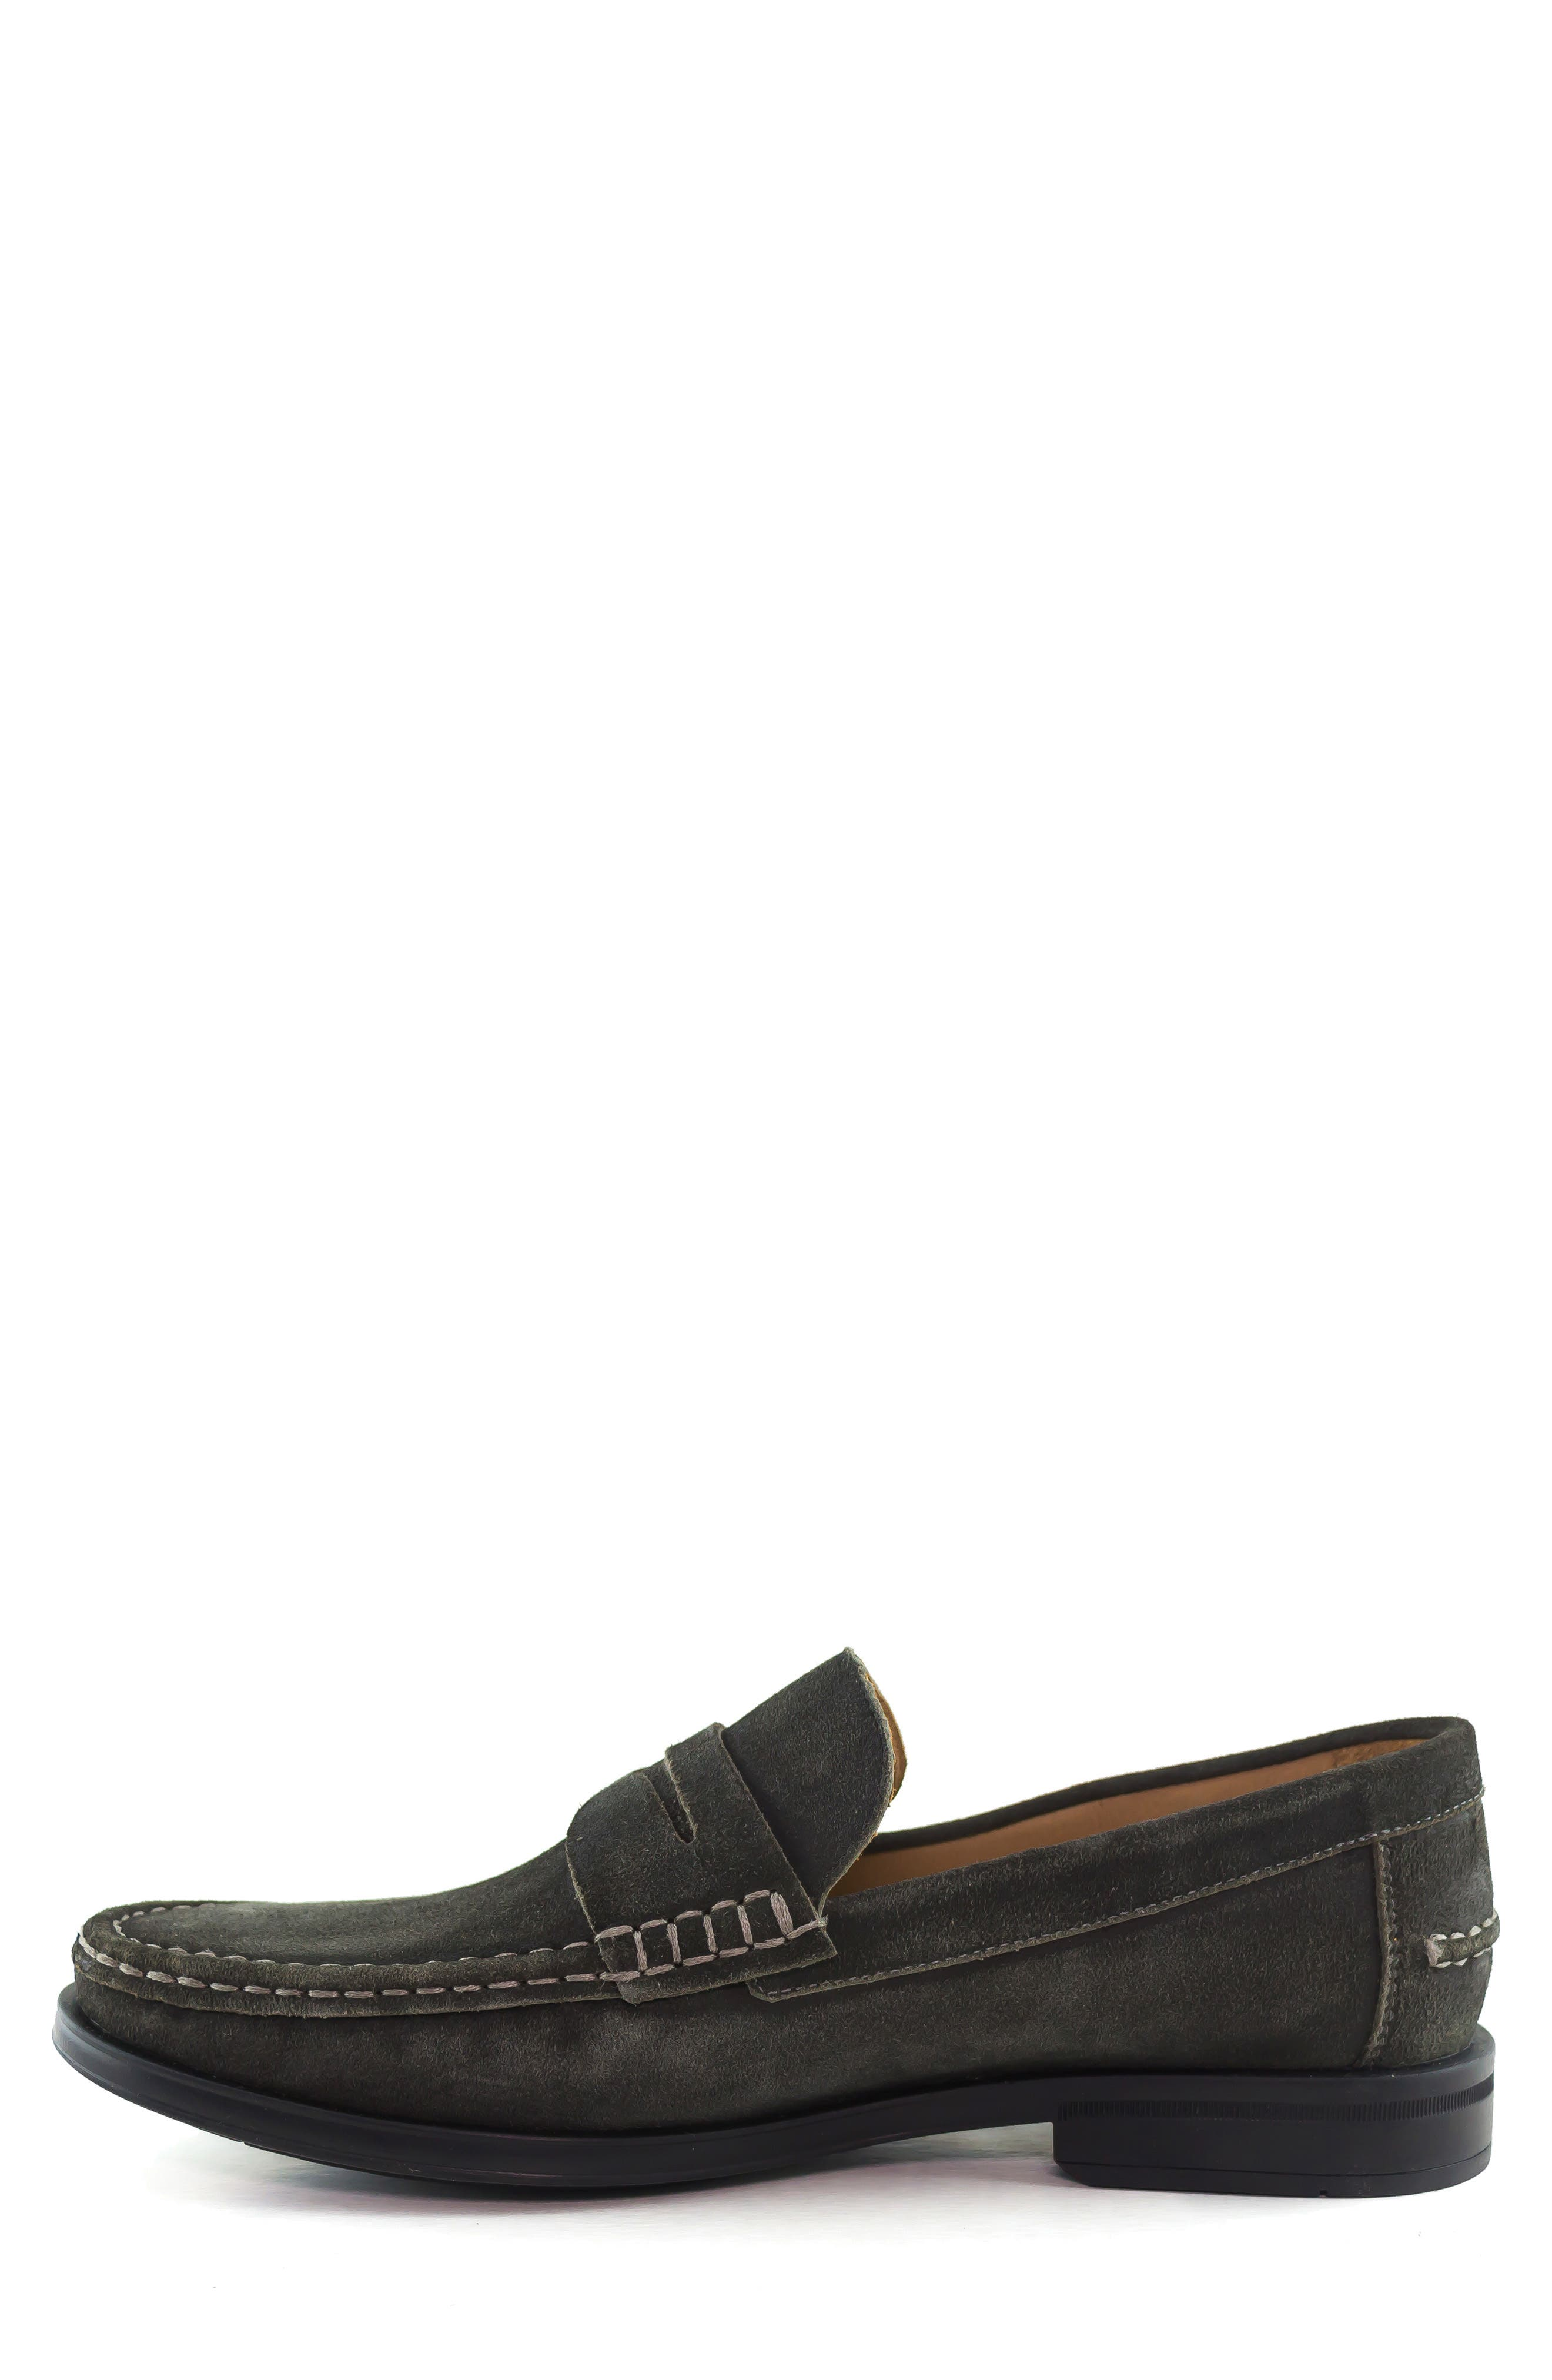 Cortland Penny Loafer,                             Alternate thumbnail 8, color,                             GRAPHITE LEATHER